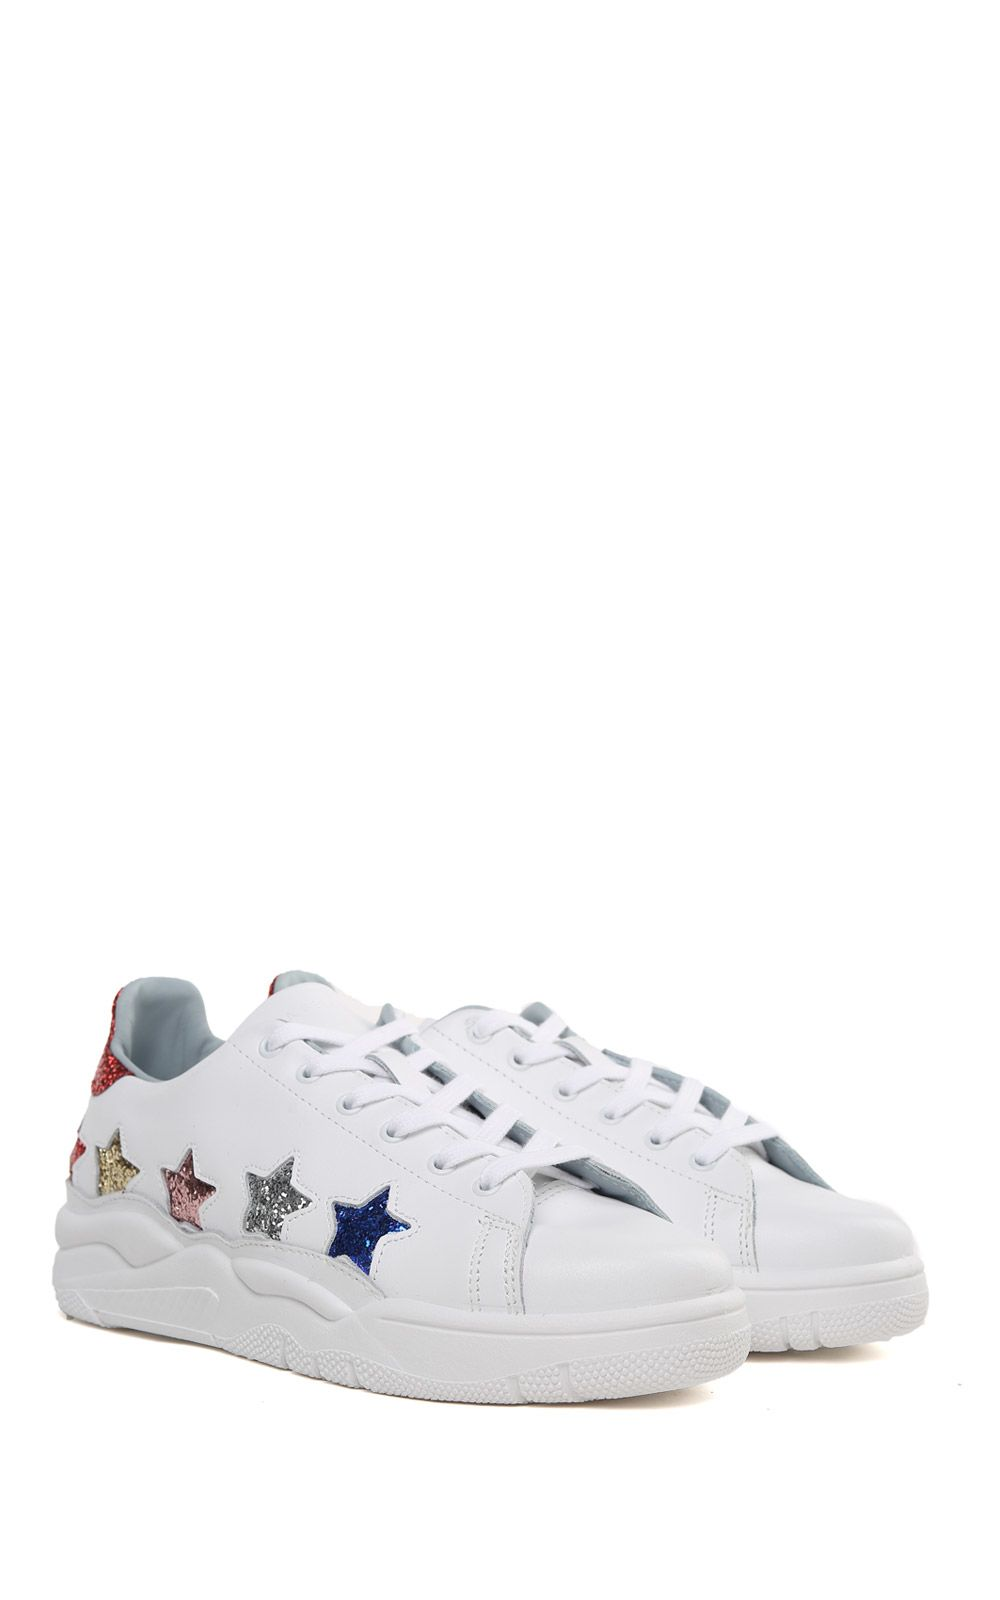 Roger glittered-star leather sneakers Chiara Ferragni T14wz6ZLEV